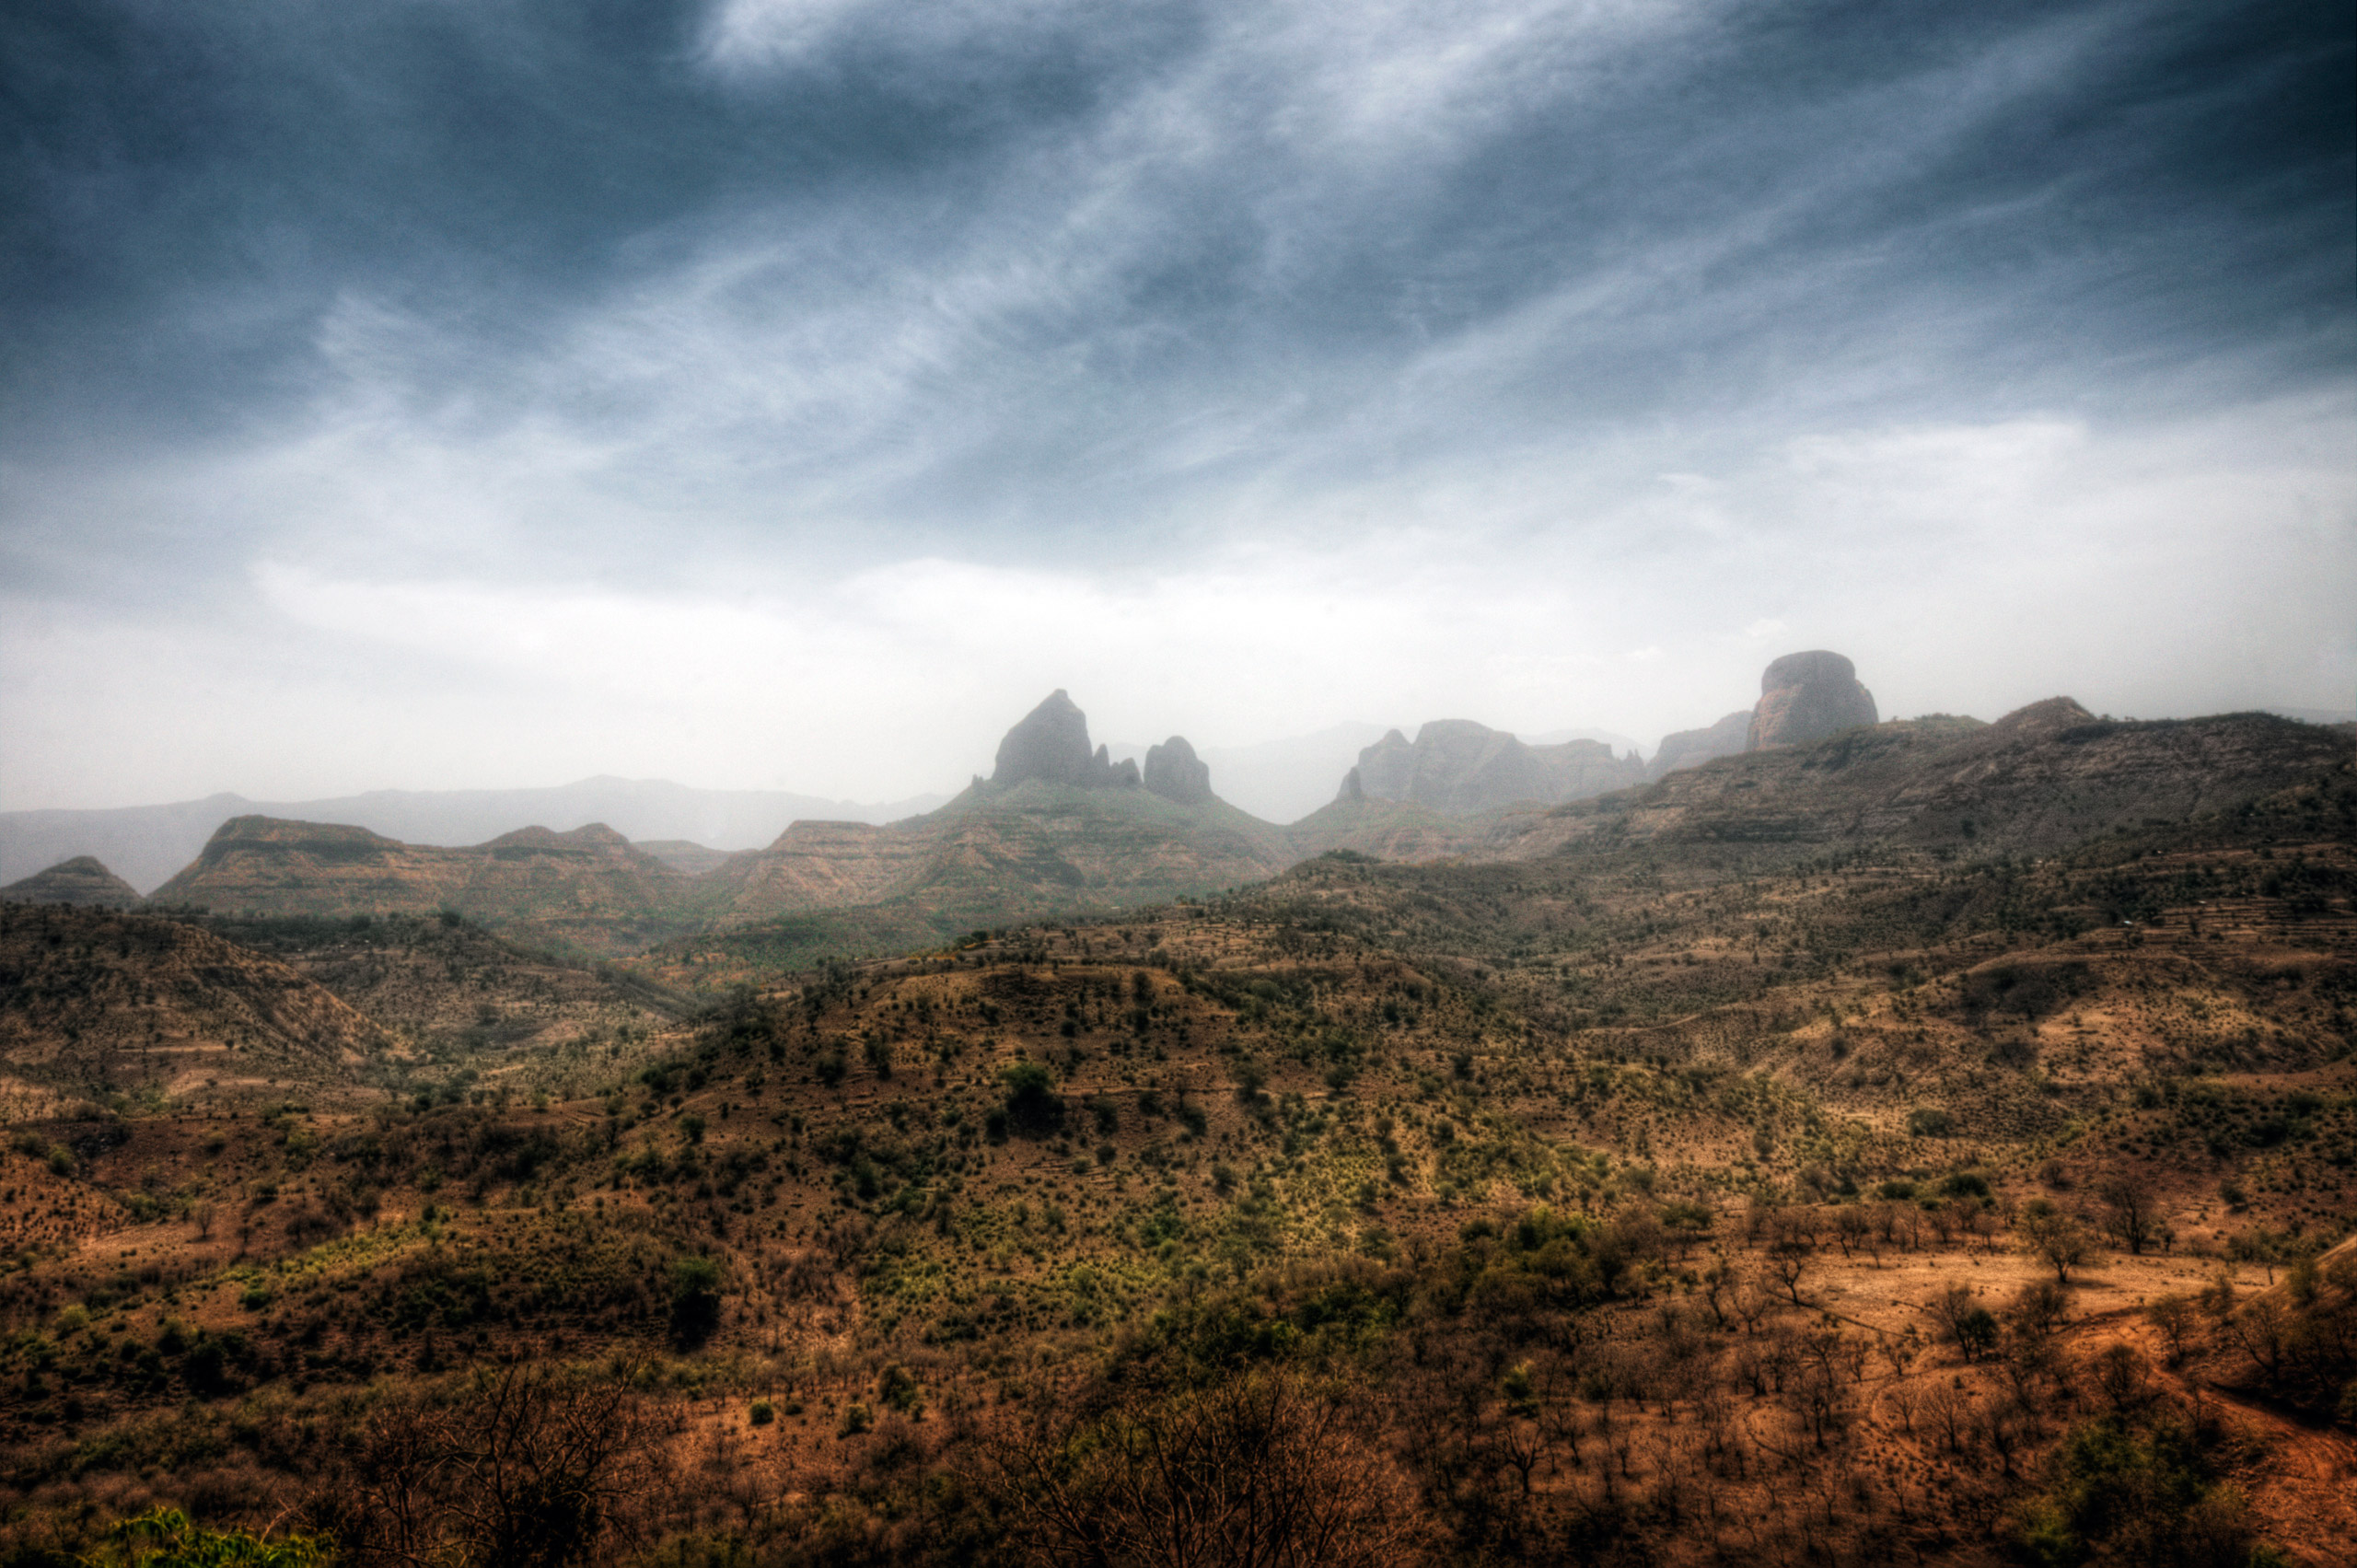 Semien mountains National Park with arid plateaux separated by valleys and rising to pinnacles, in Ethiopia.